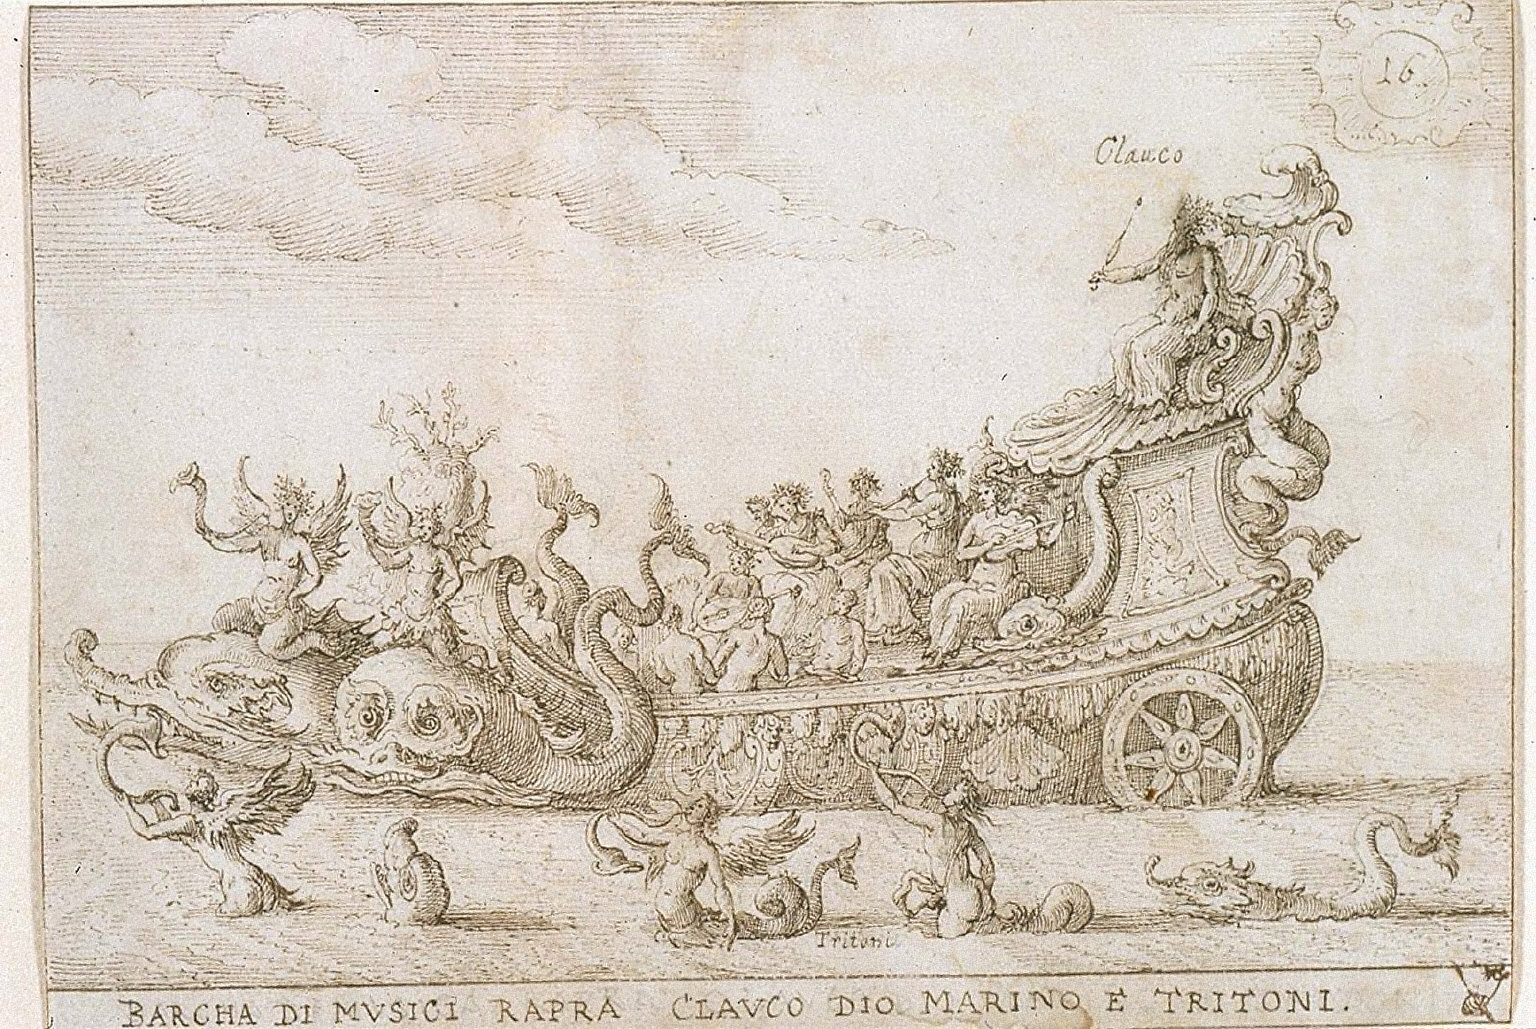 A Fantastic Barge Decorated with Dolphins and Carrying Musicians and Glaucus